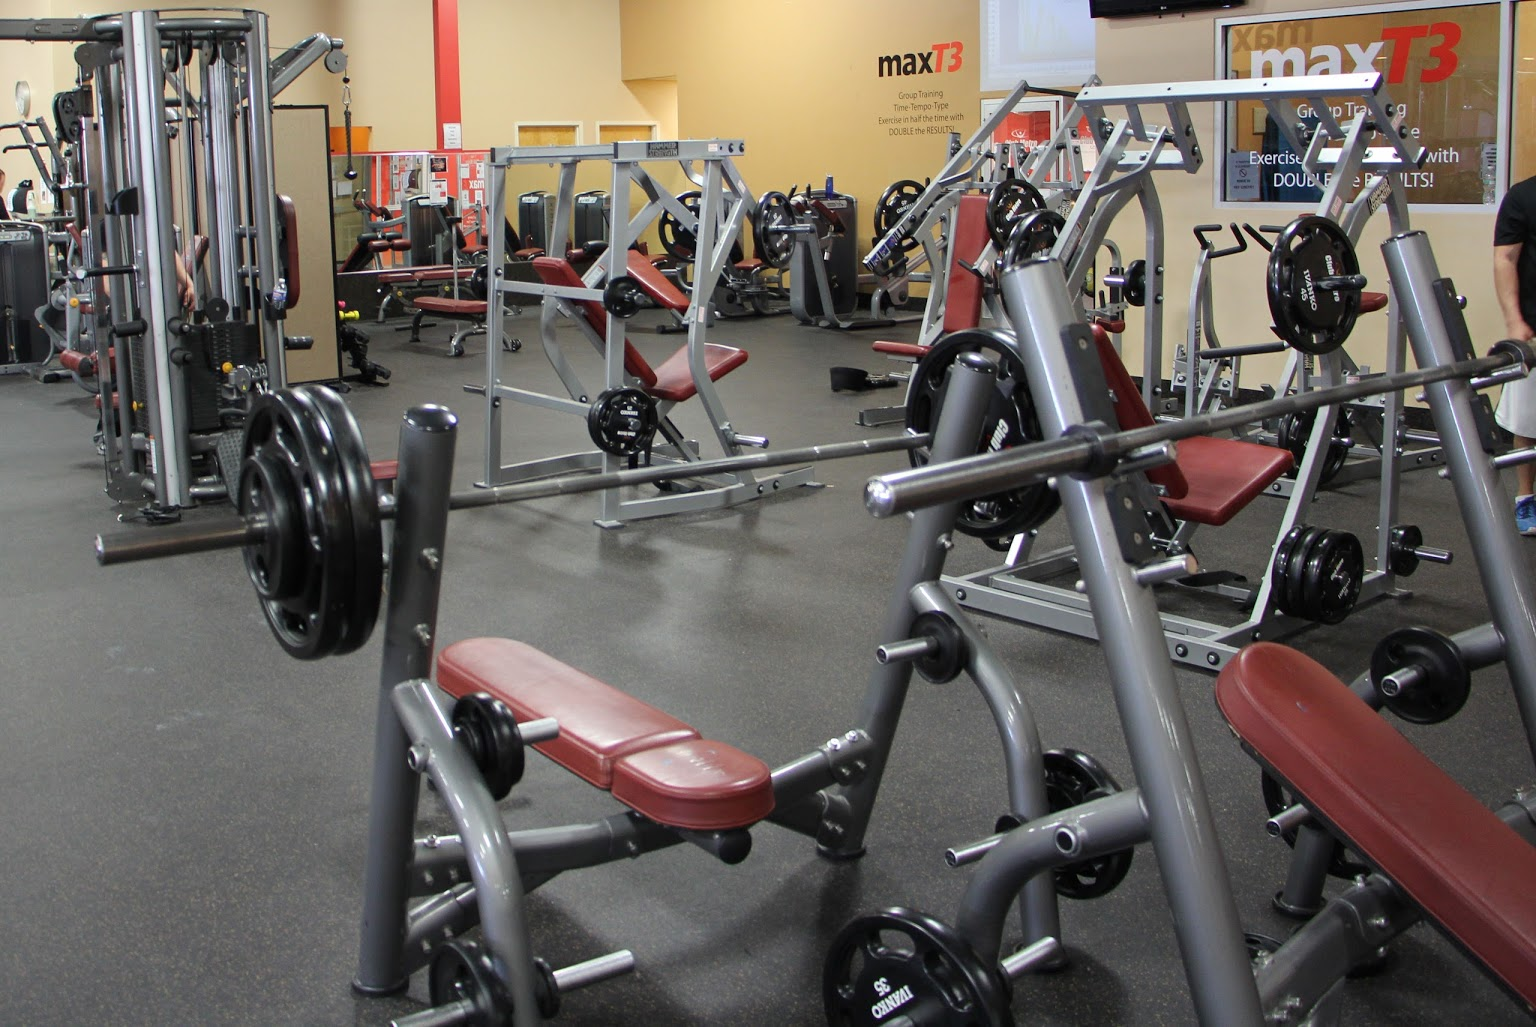 weights Club Metro USA Fitness Center Phillipsburg NJ